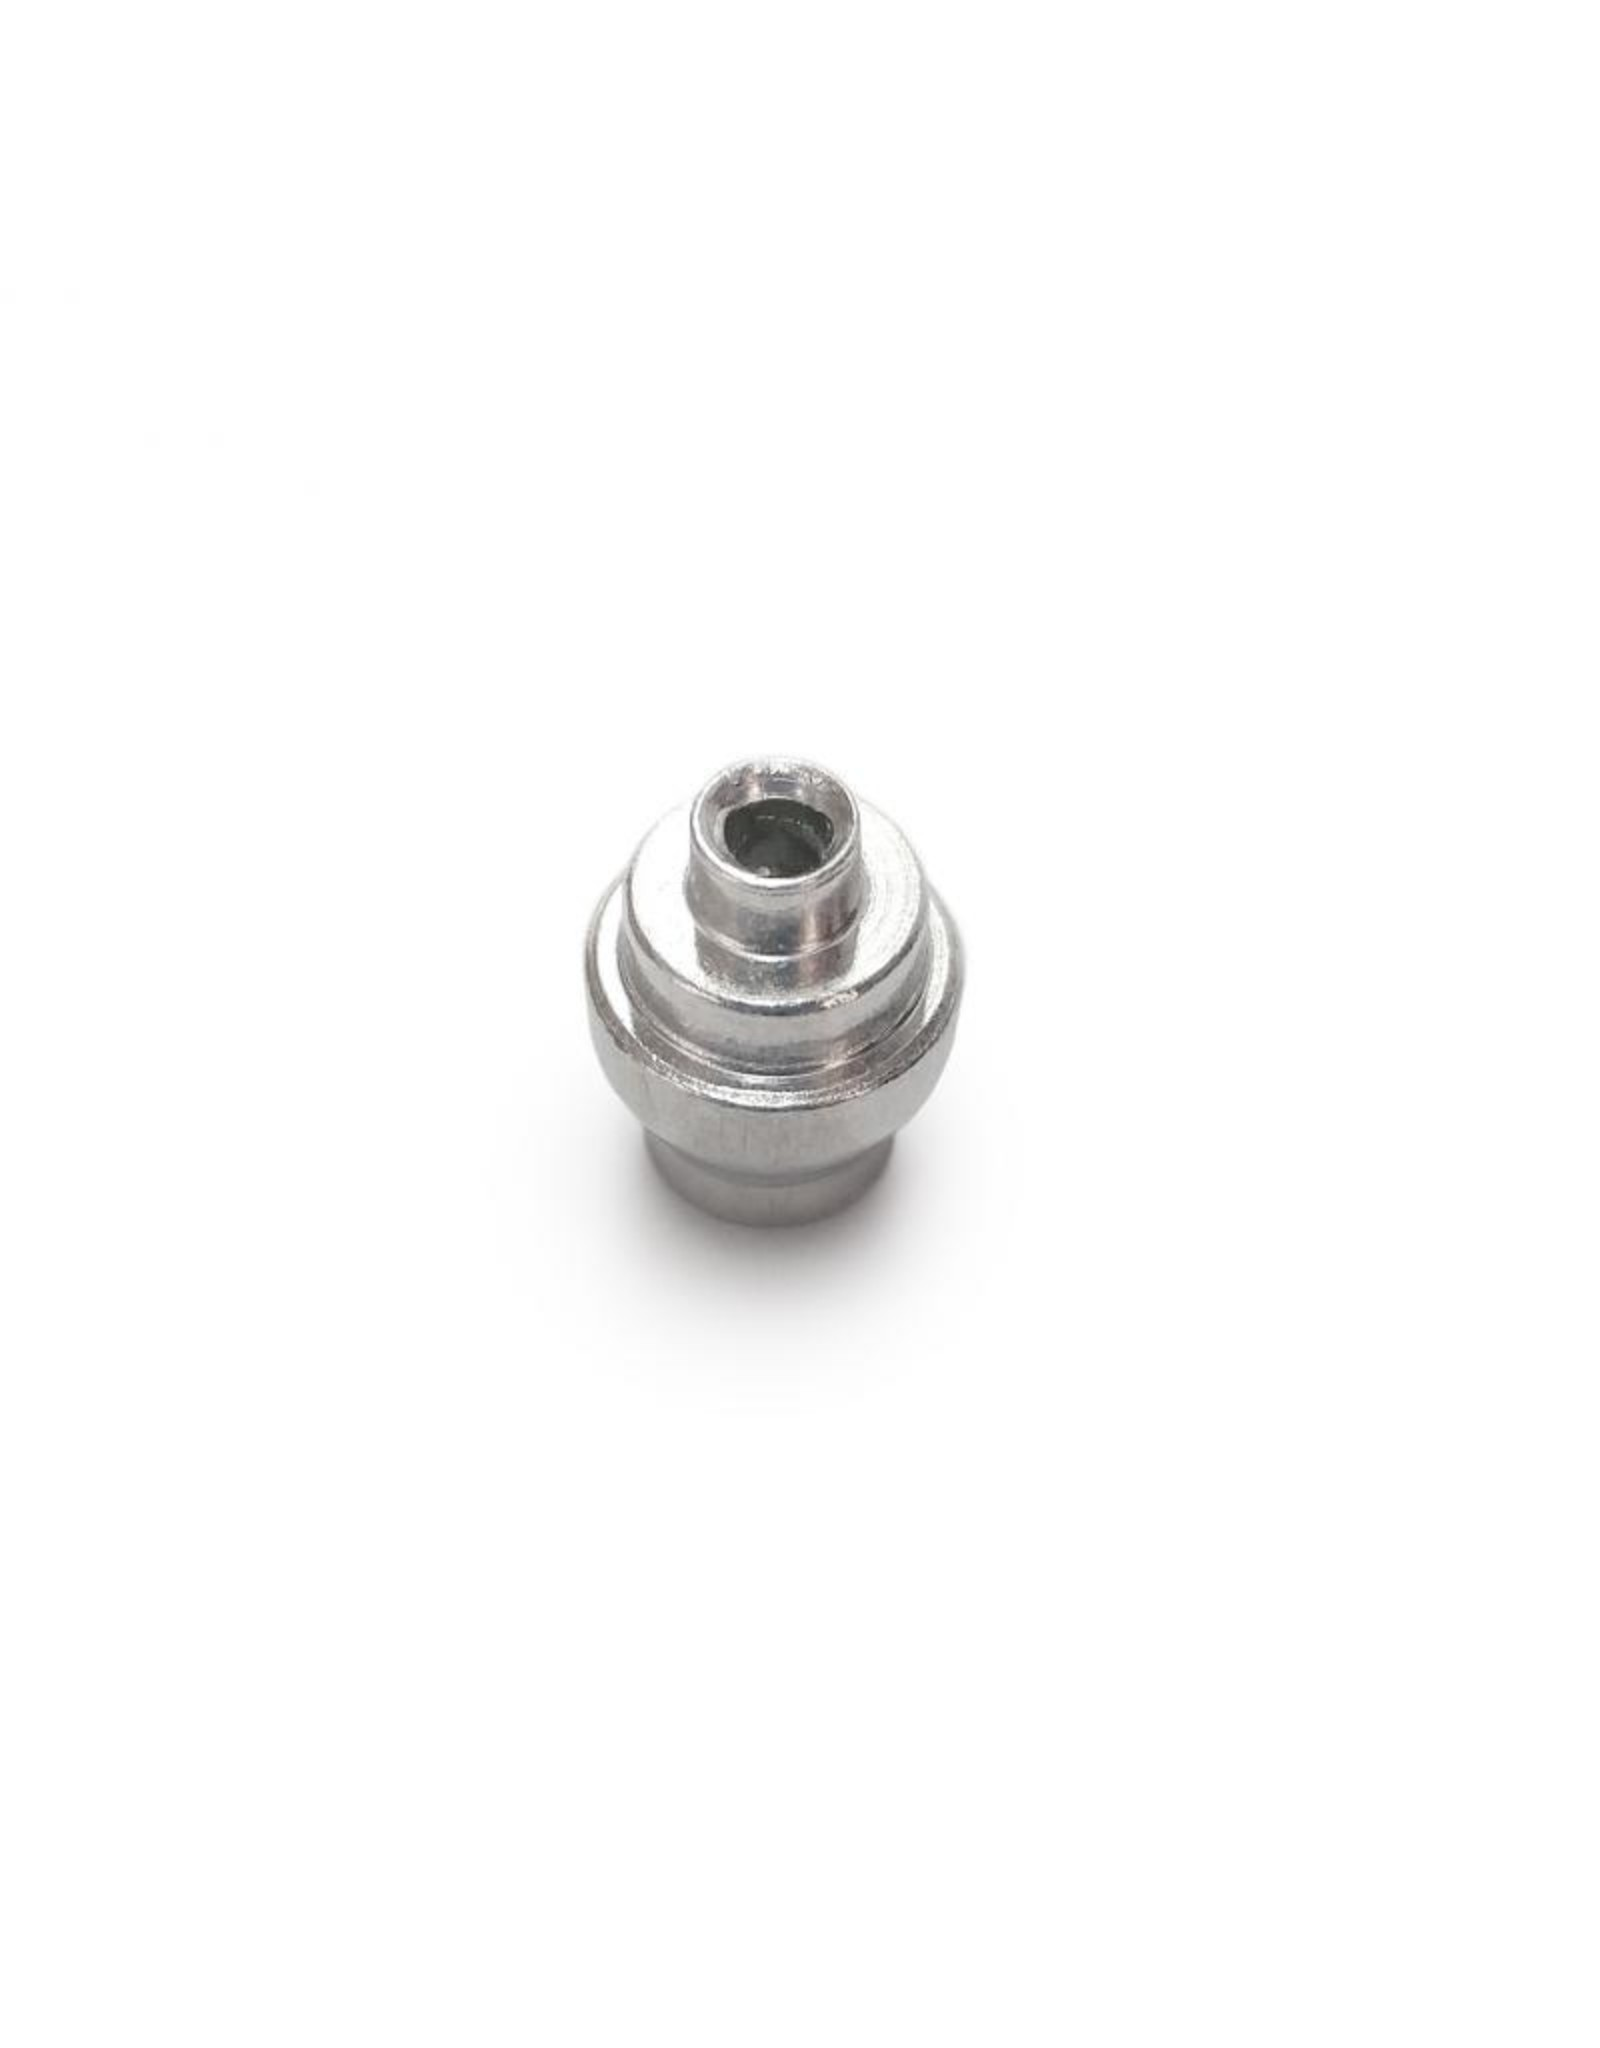 ECONO Cable End Stop Old Road Ferrule